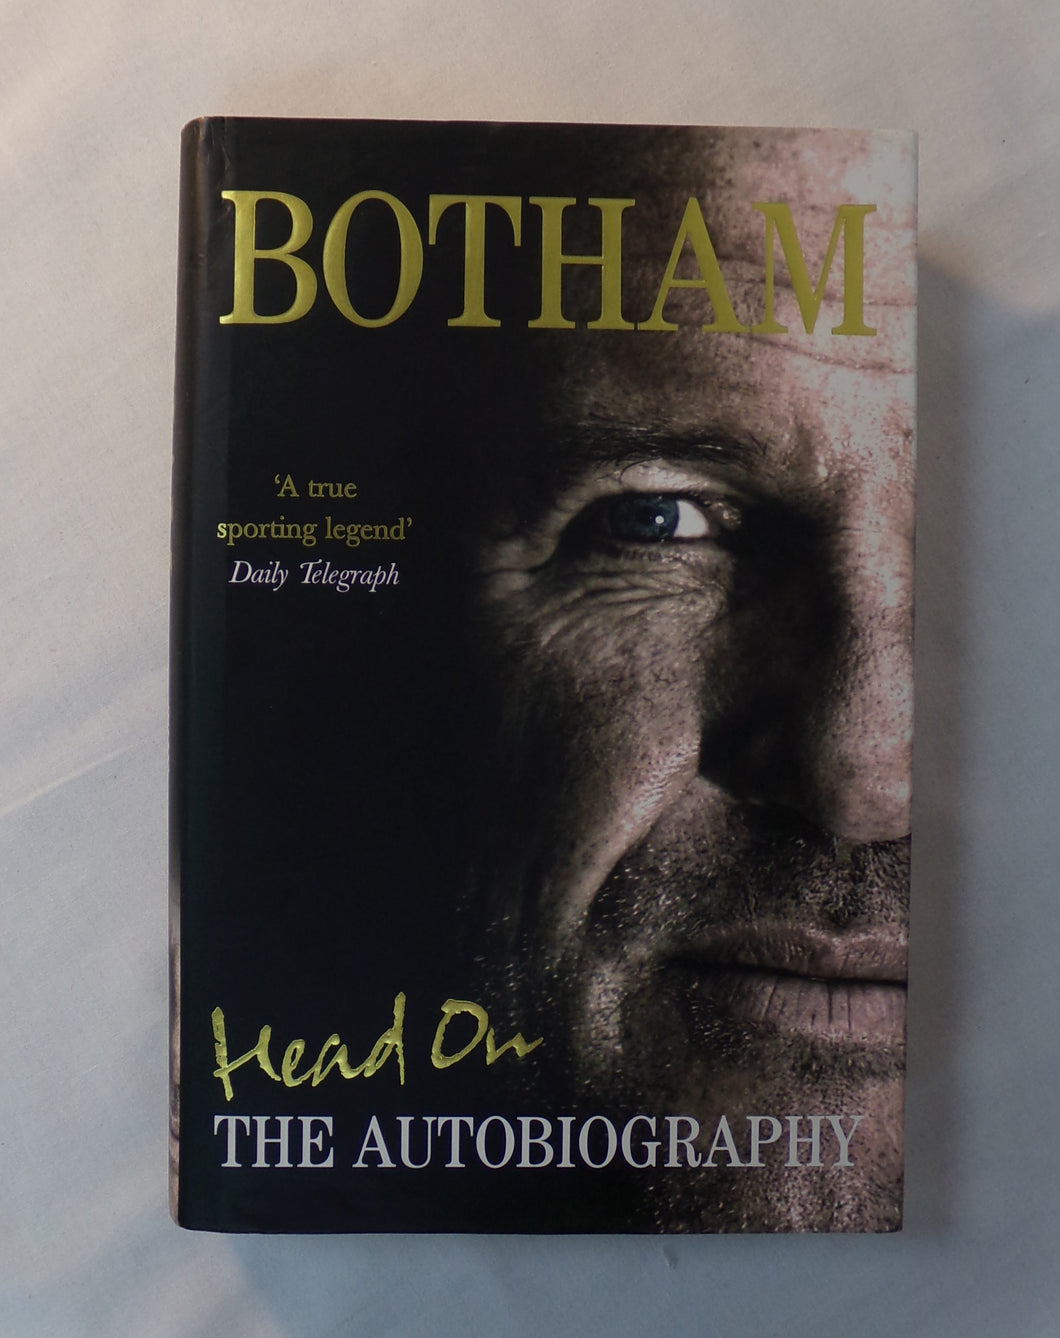 Voted the greatest English cricketer of the 20th century by the fans, Sir Ian Botham is the English game's one true living legend and his story both on and off the pitch reads like a Boy's Own rollercoaster ride.  Born with a natural genius for cricket, Botham began breaking records with bat and ball from a young age and soon became the man English cricket expected most from. After a troubled period as England's captain, Botham rose once again to become a national hero with his display in the Miracle Ashes